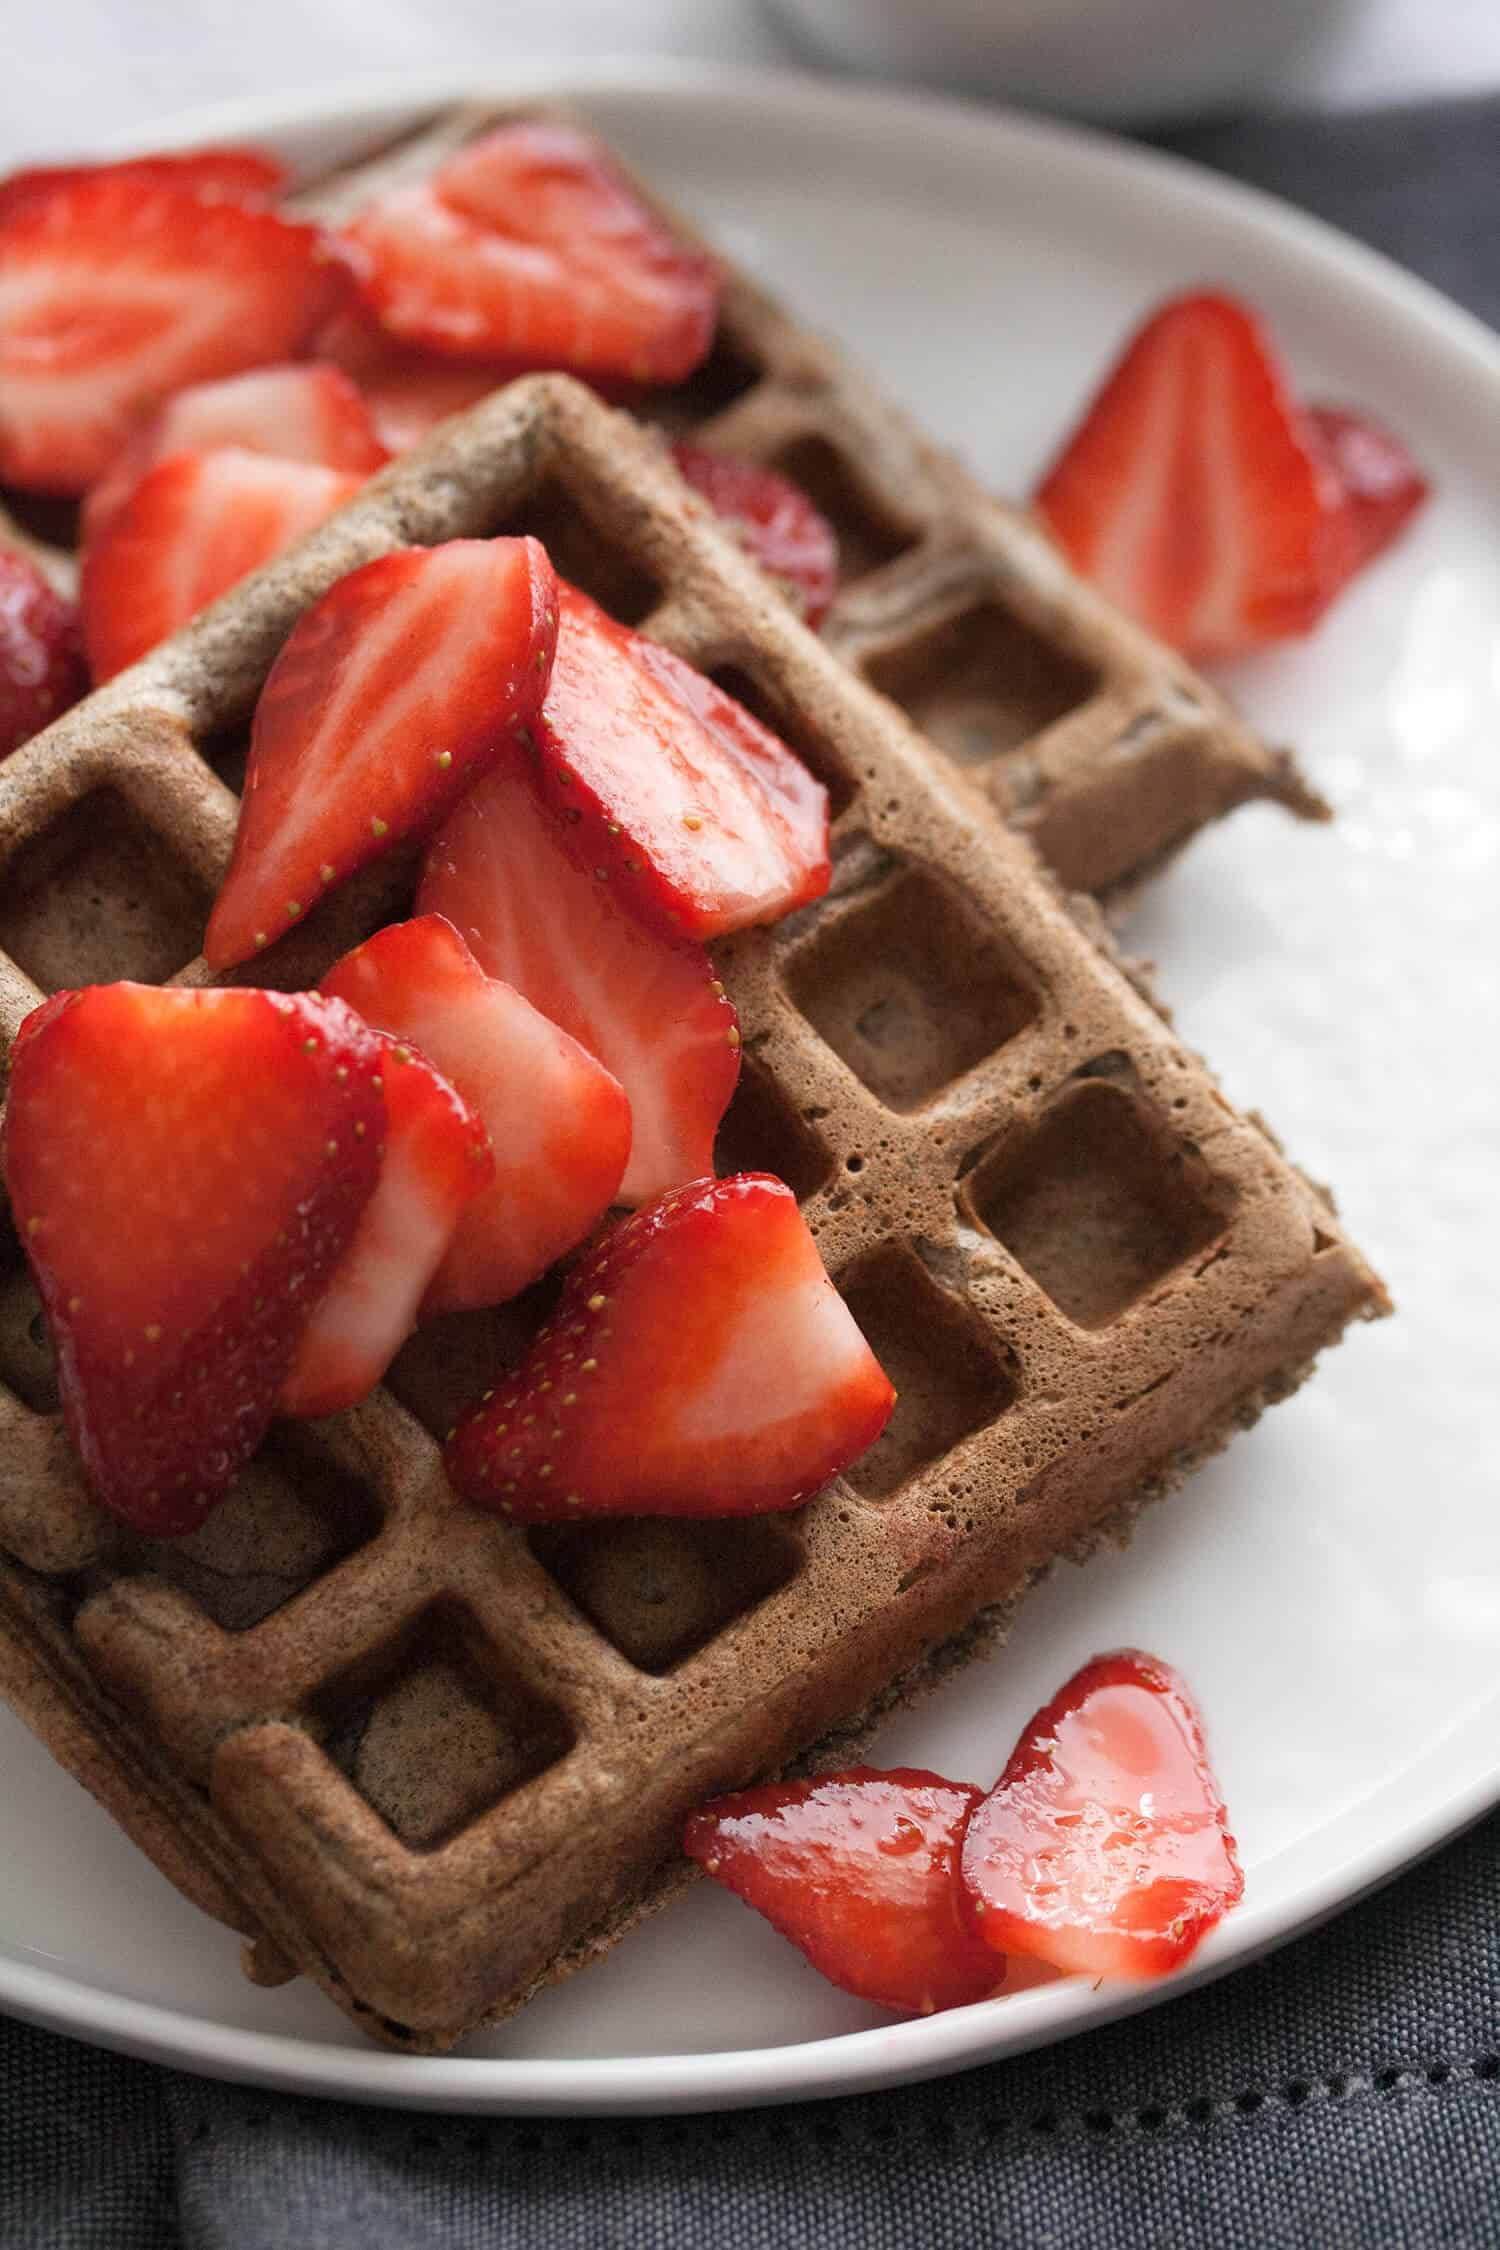 Berried Treasure: Buckwheat Waffles with Macerated Strawberries